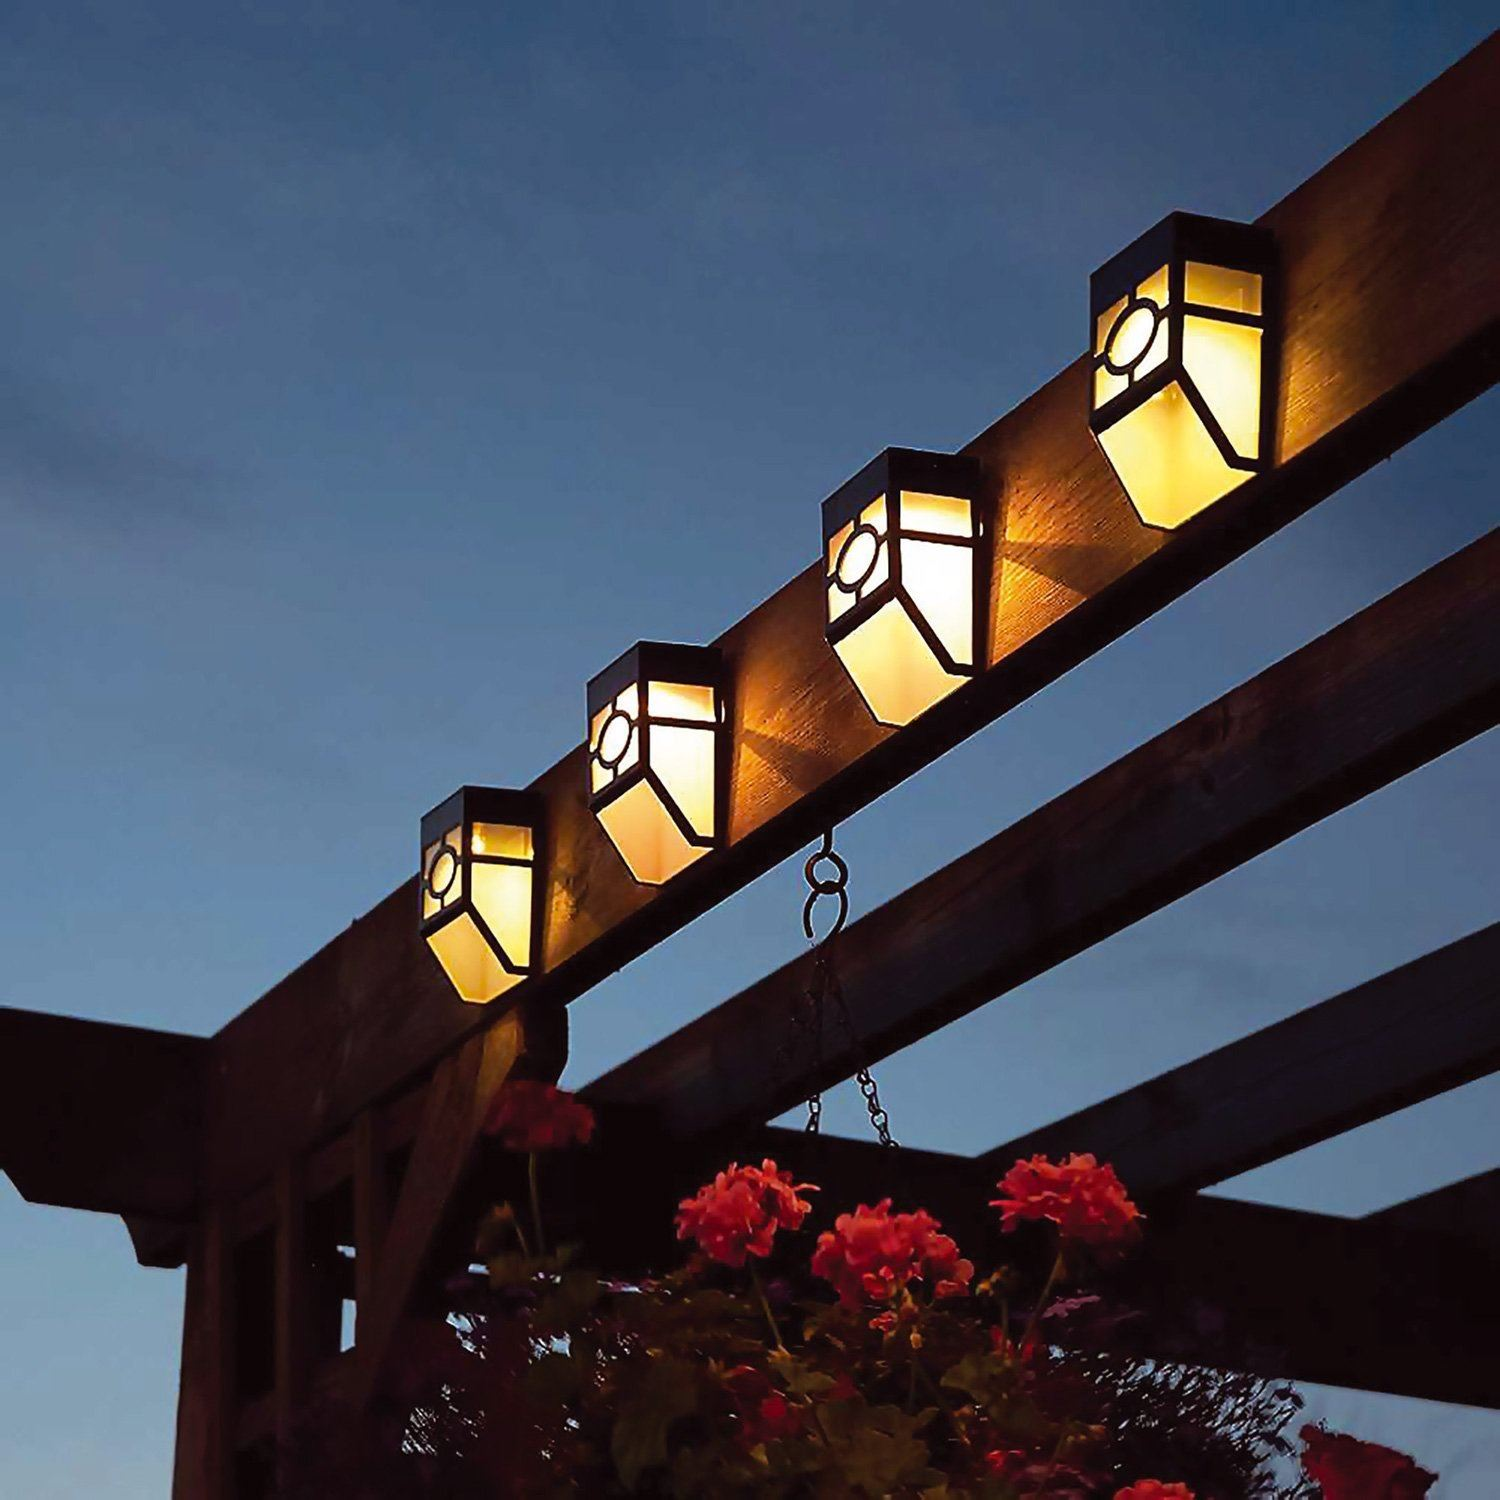 4x Solalite Decorative Wireless Garden Solar Lights Weatherproof Outdoor Fence Lamps